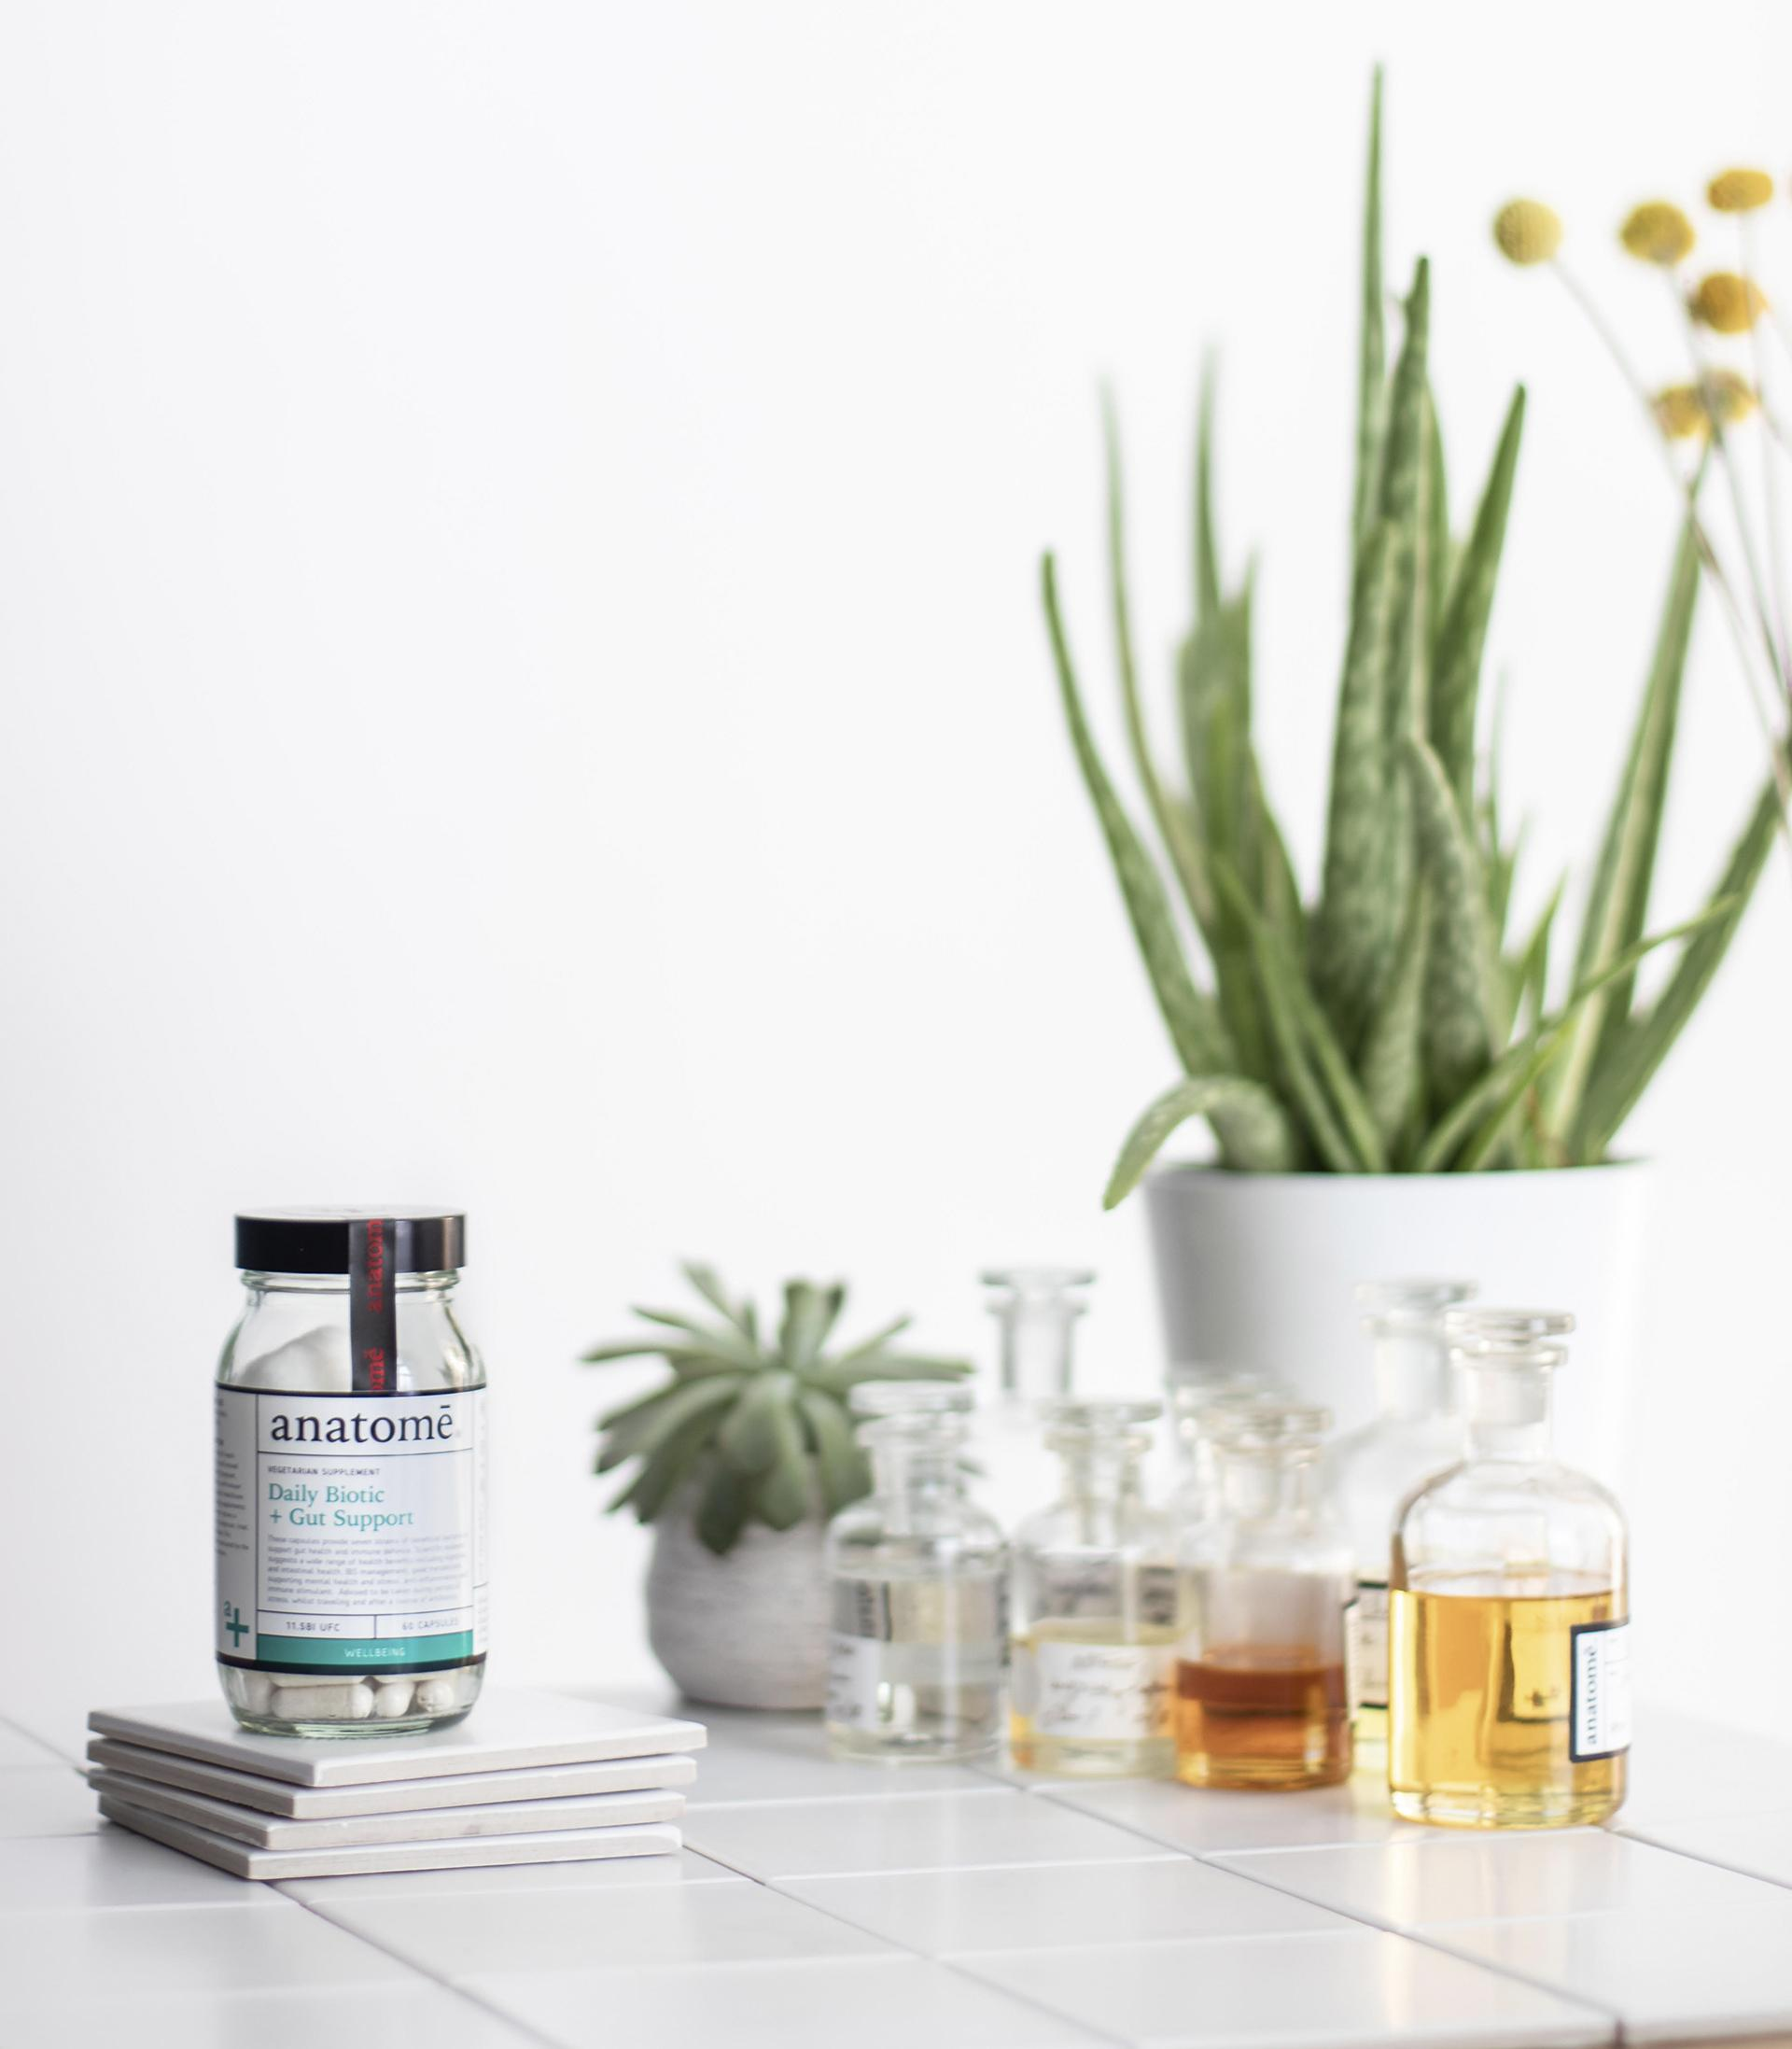 Anatome Essential Daily Probiotic + Gut Support